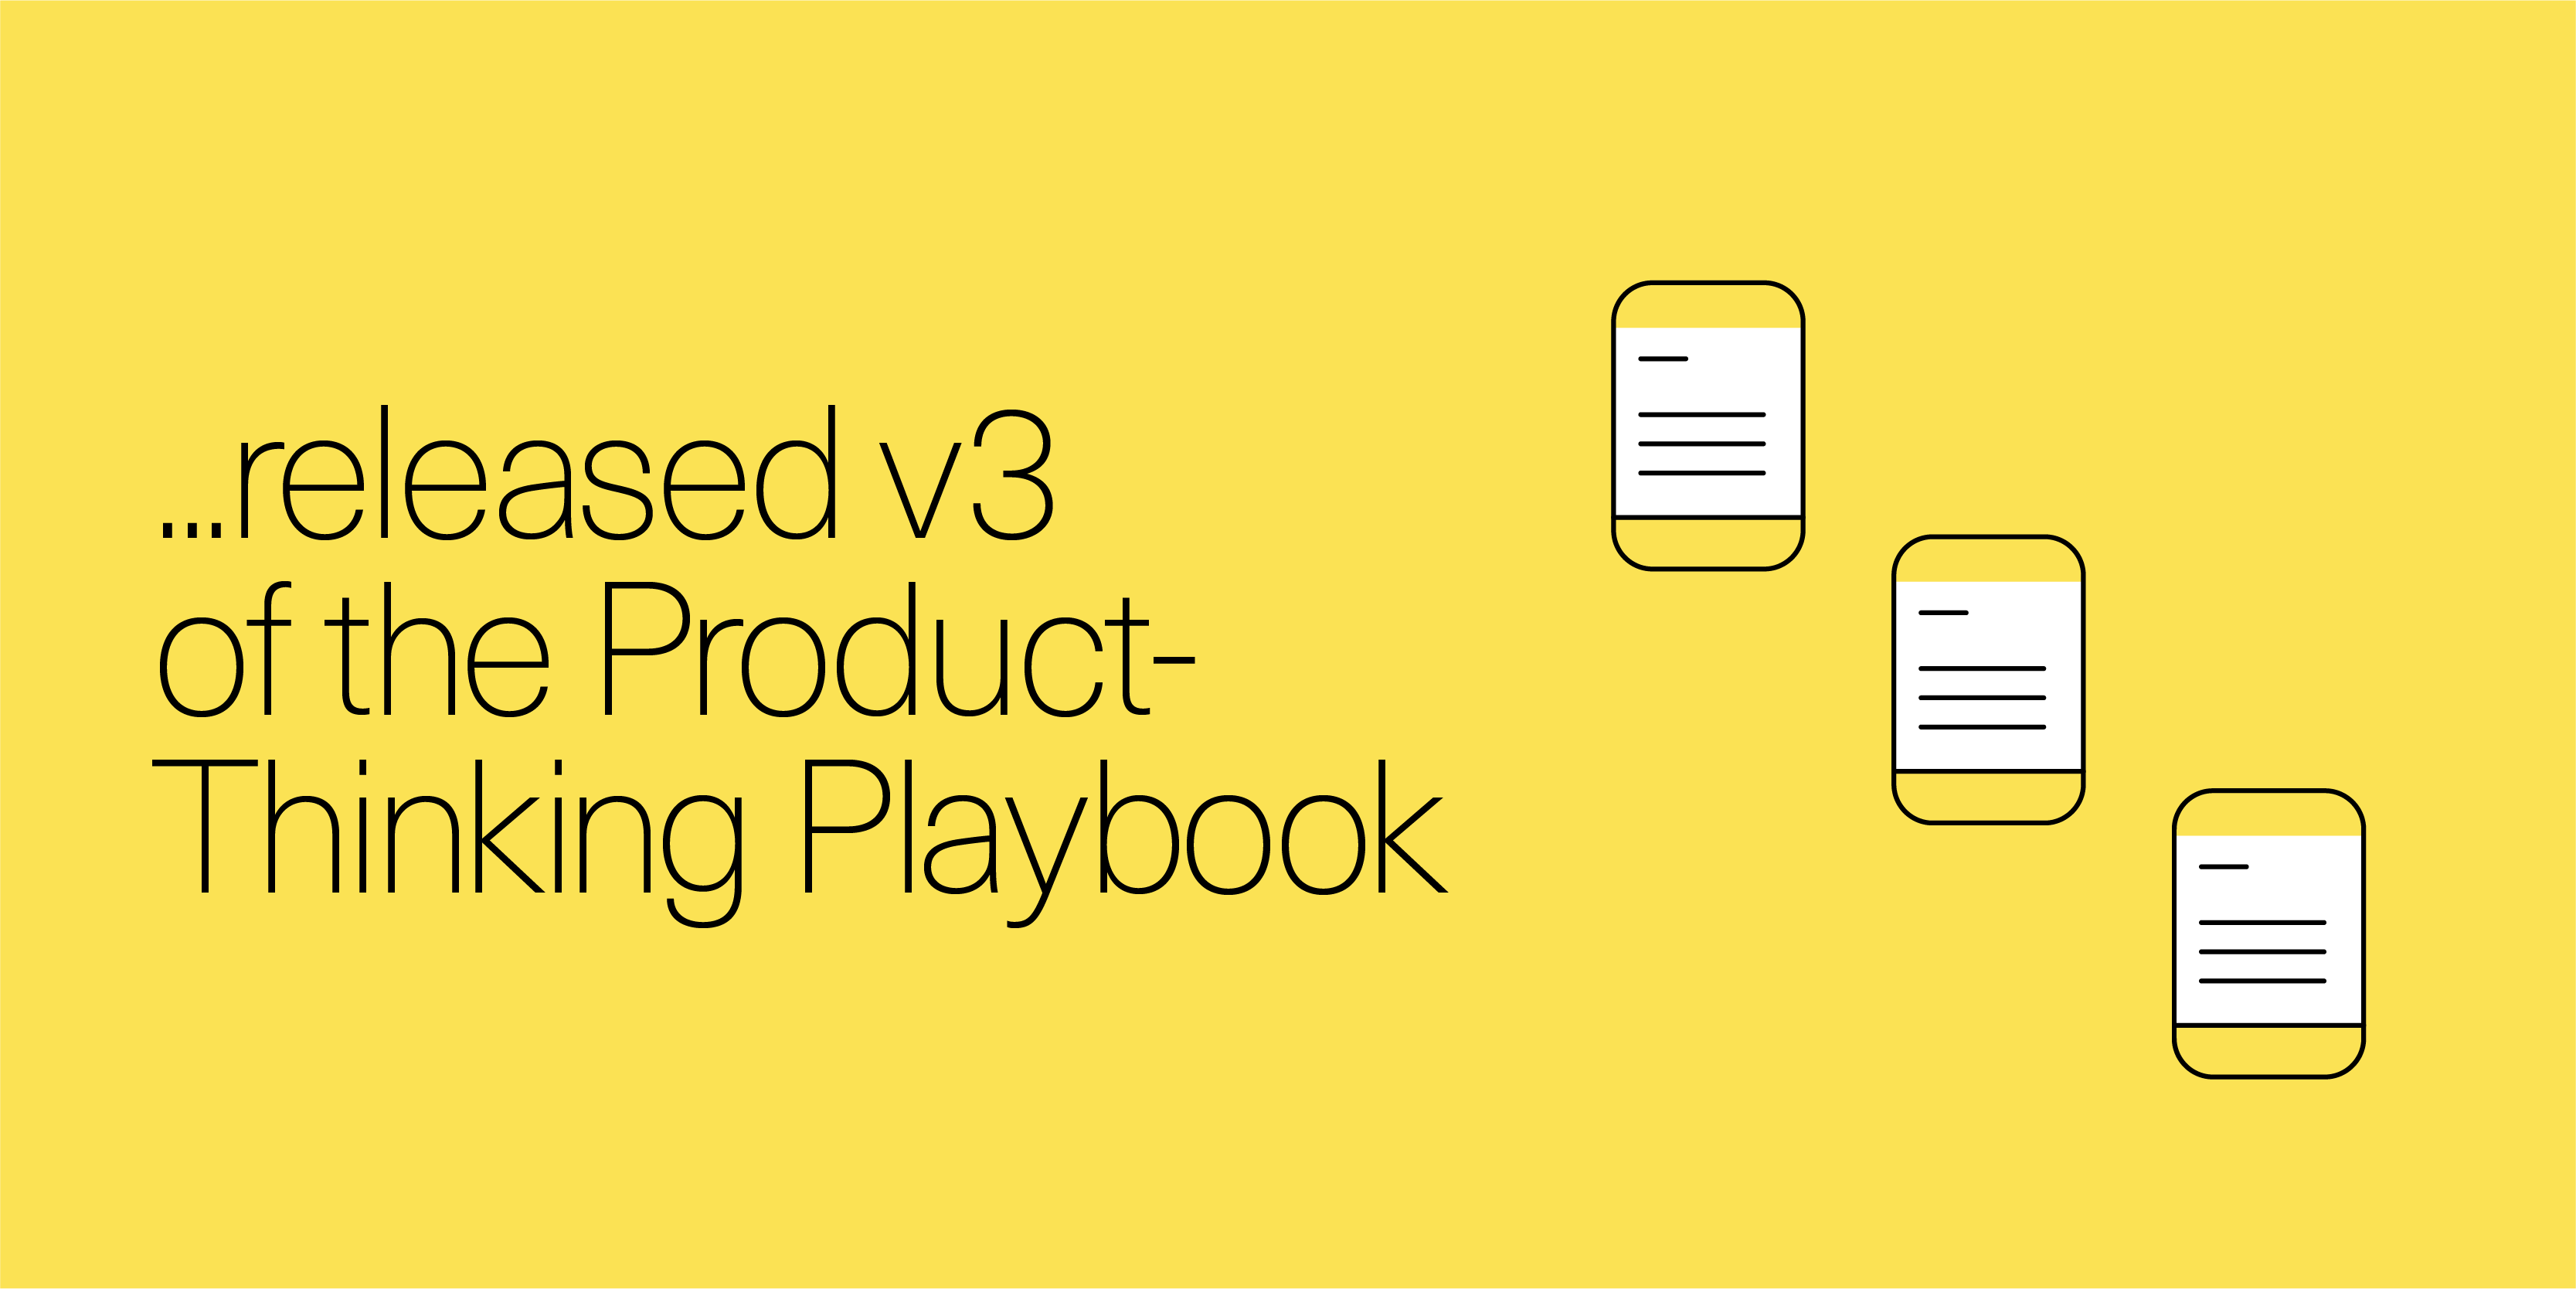 released v3 of the Product-Thinking playbook